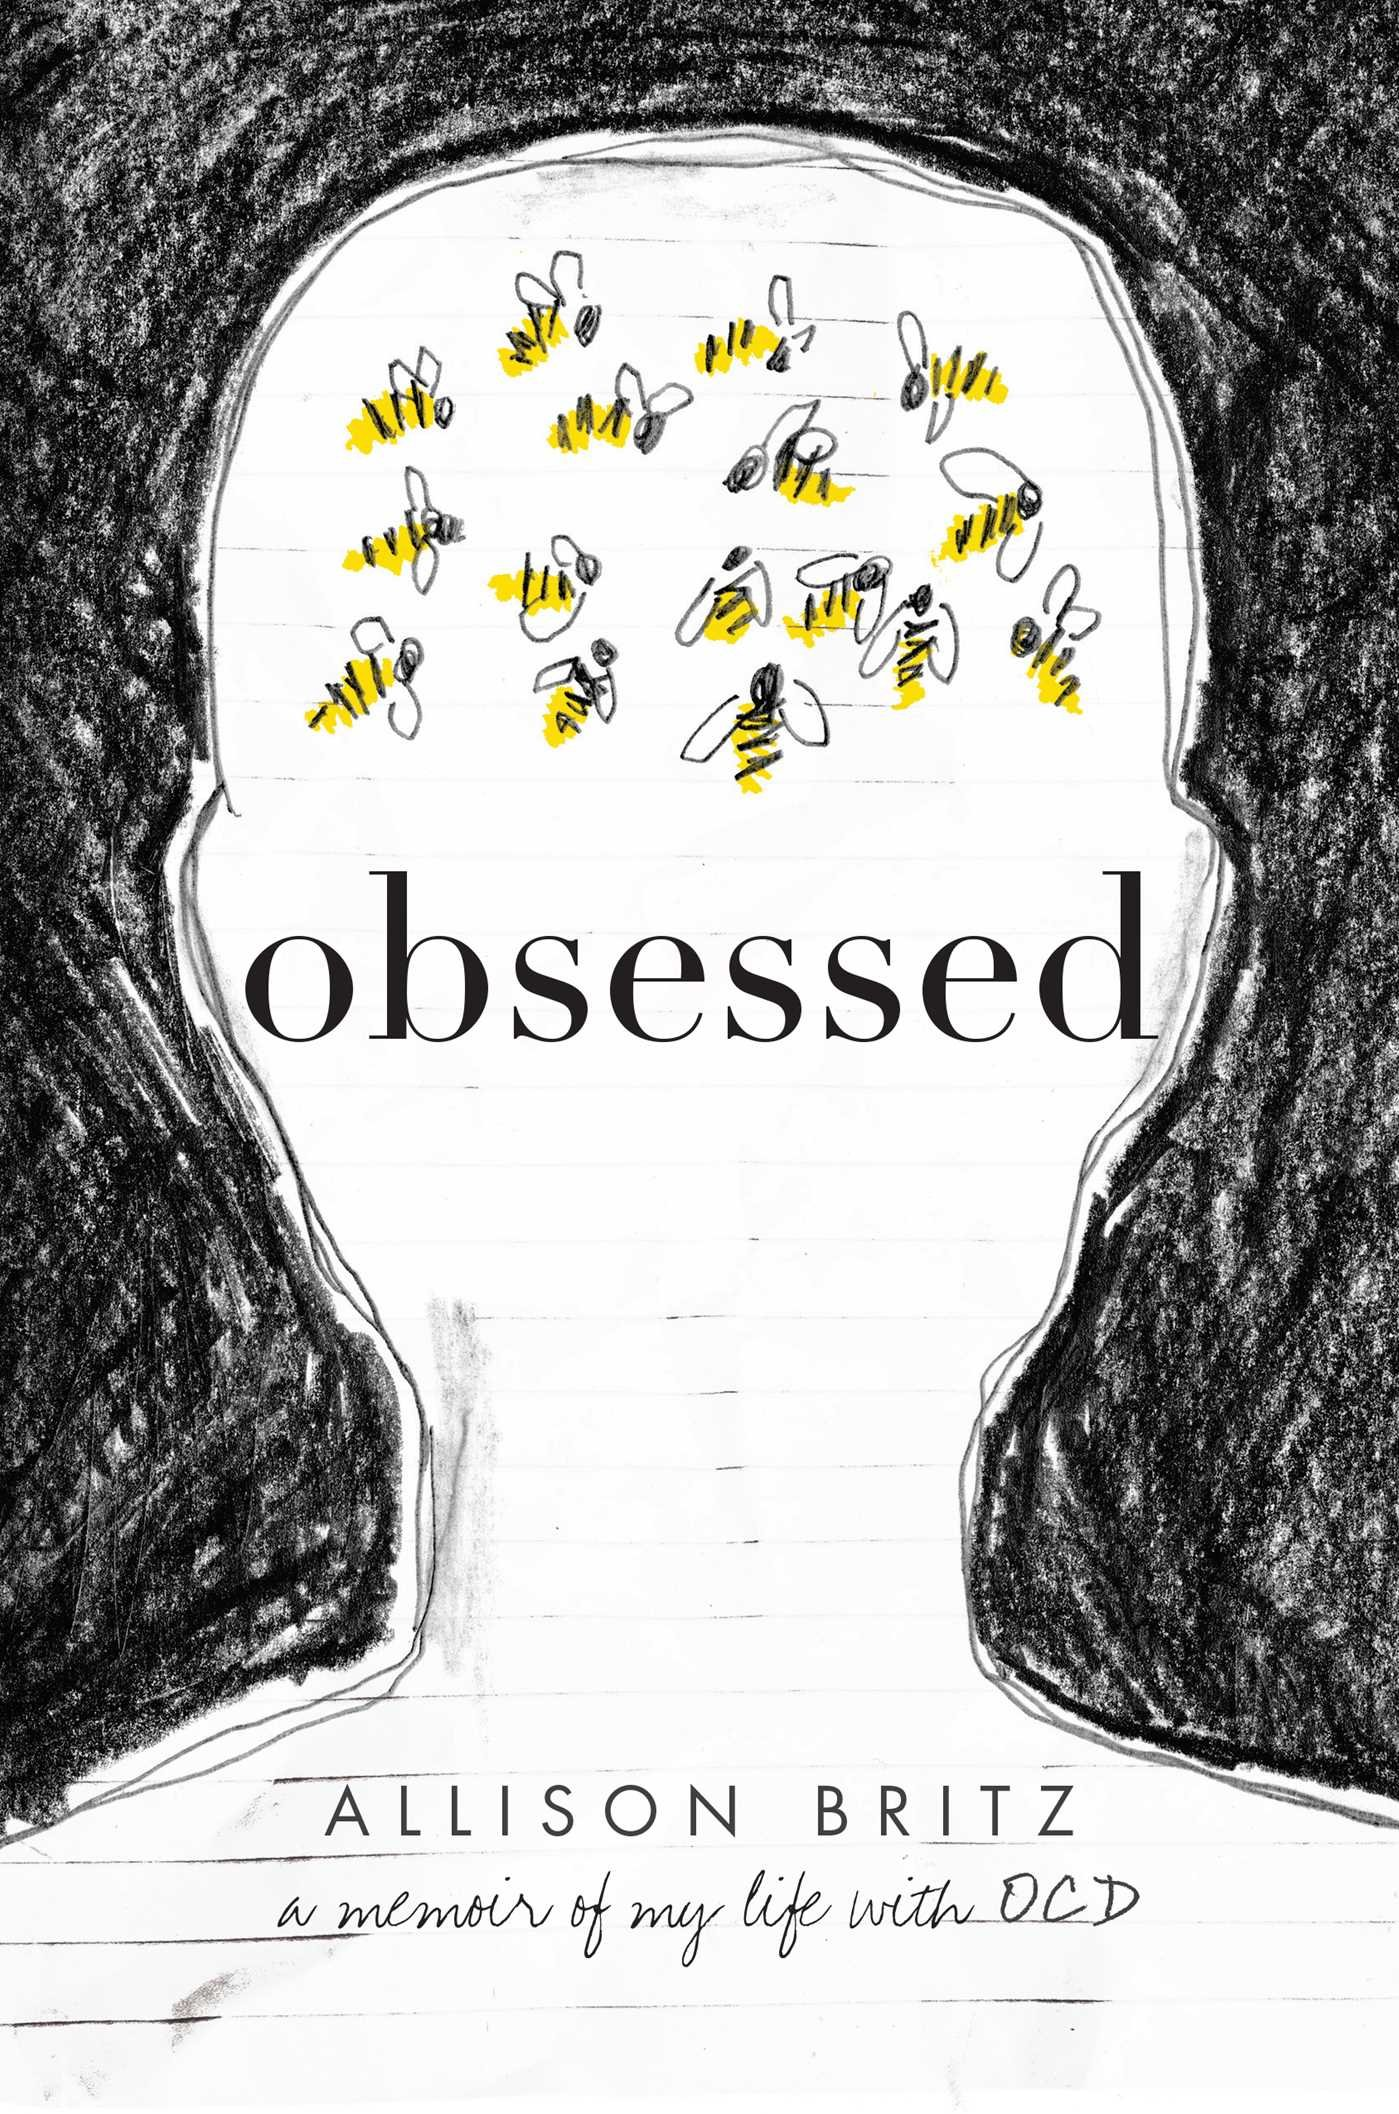 Amazoncom Obsessed A Memoir Of My Life With OCD - 27 images that will push anyone with ocd over the edge